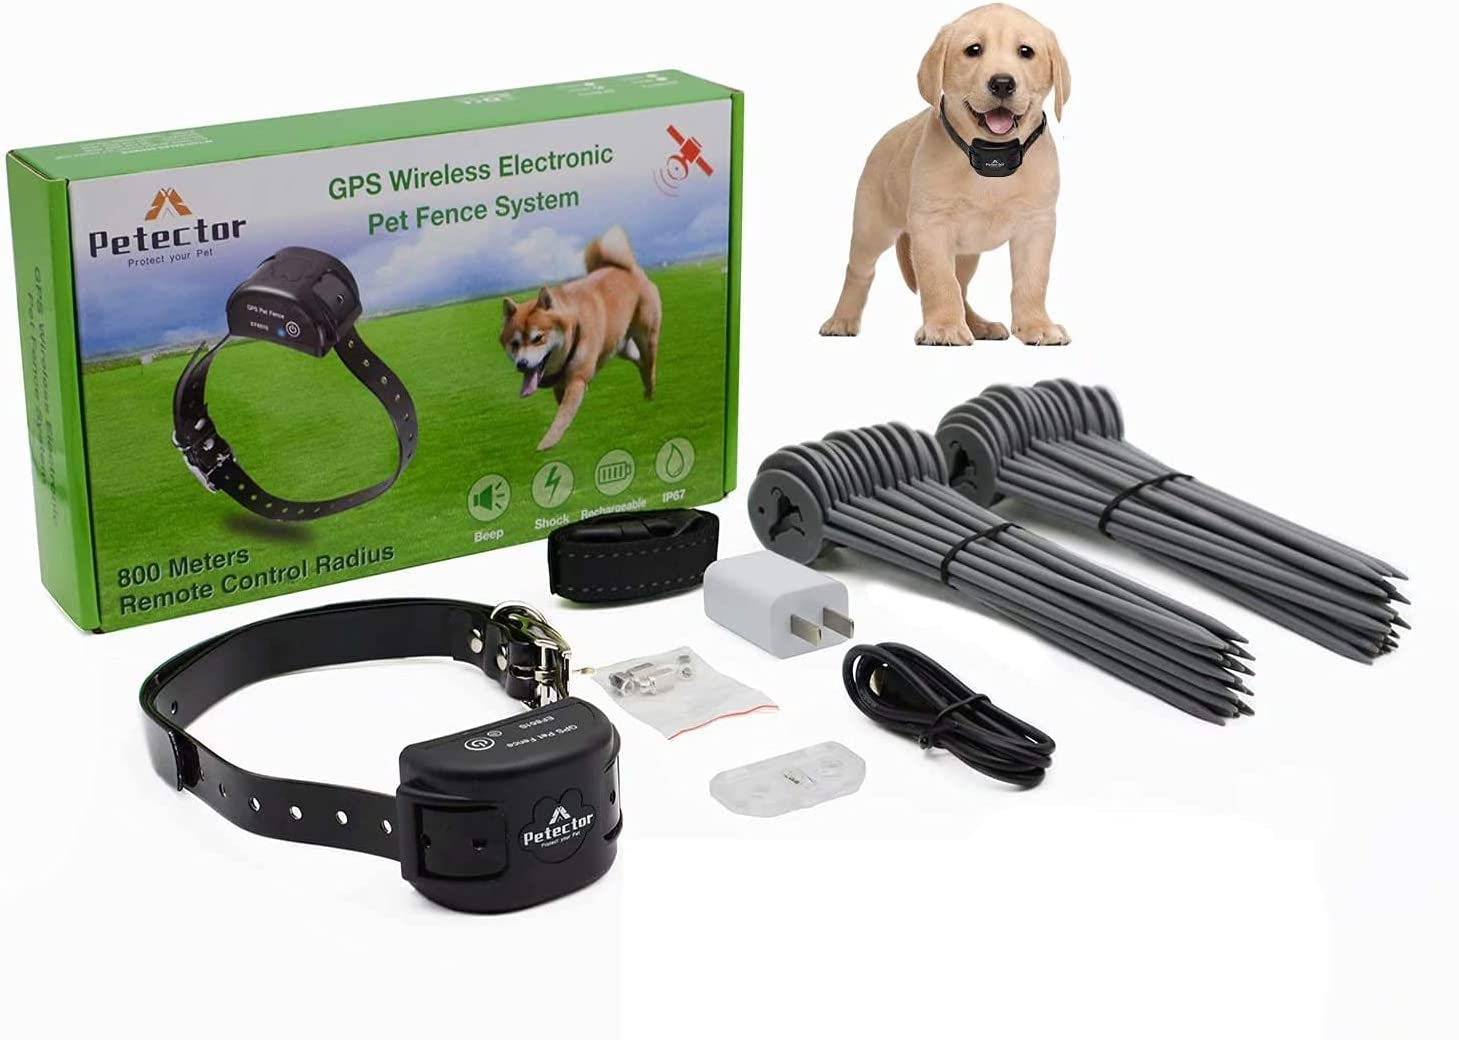 GPS Wireless Max 79% OFF Dog Fence System Portland Mall Electric Pet Containment Sy